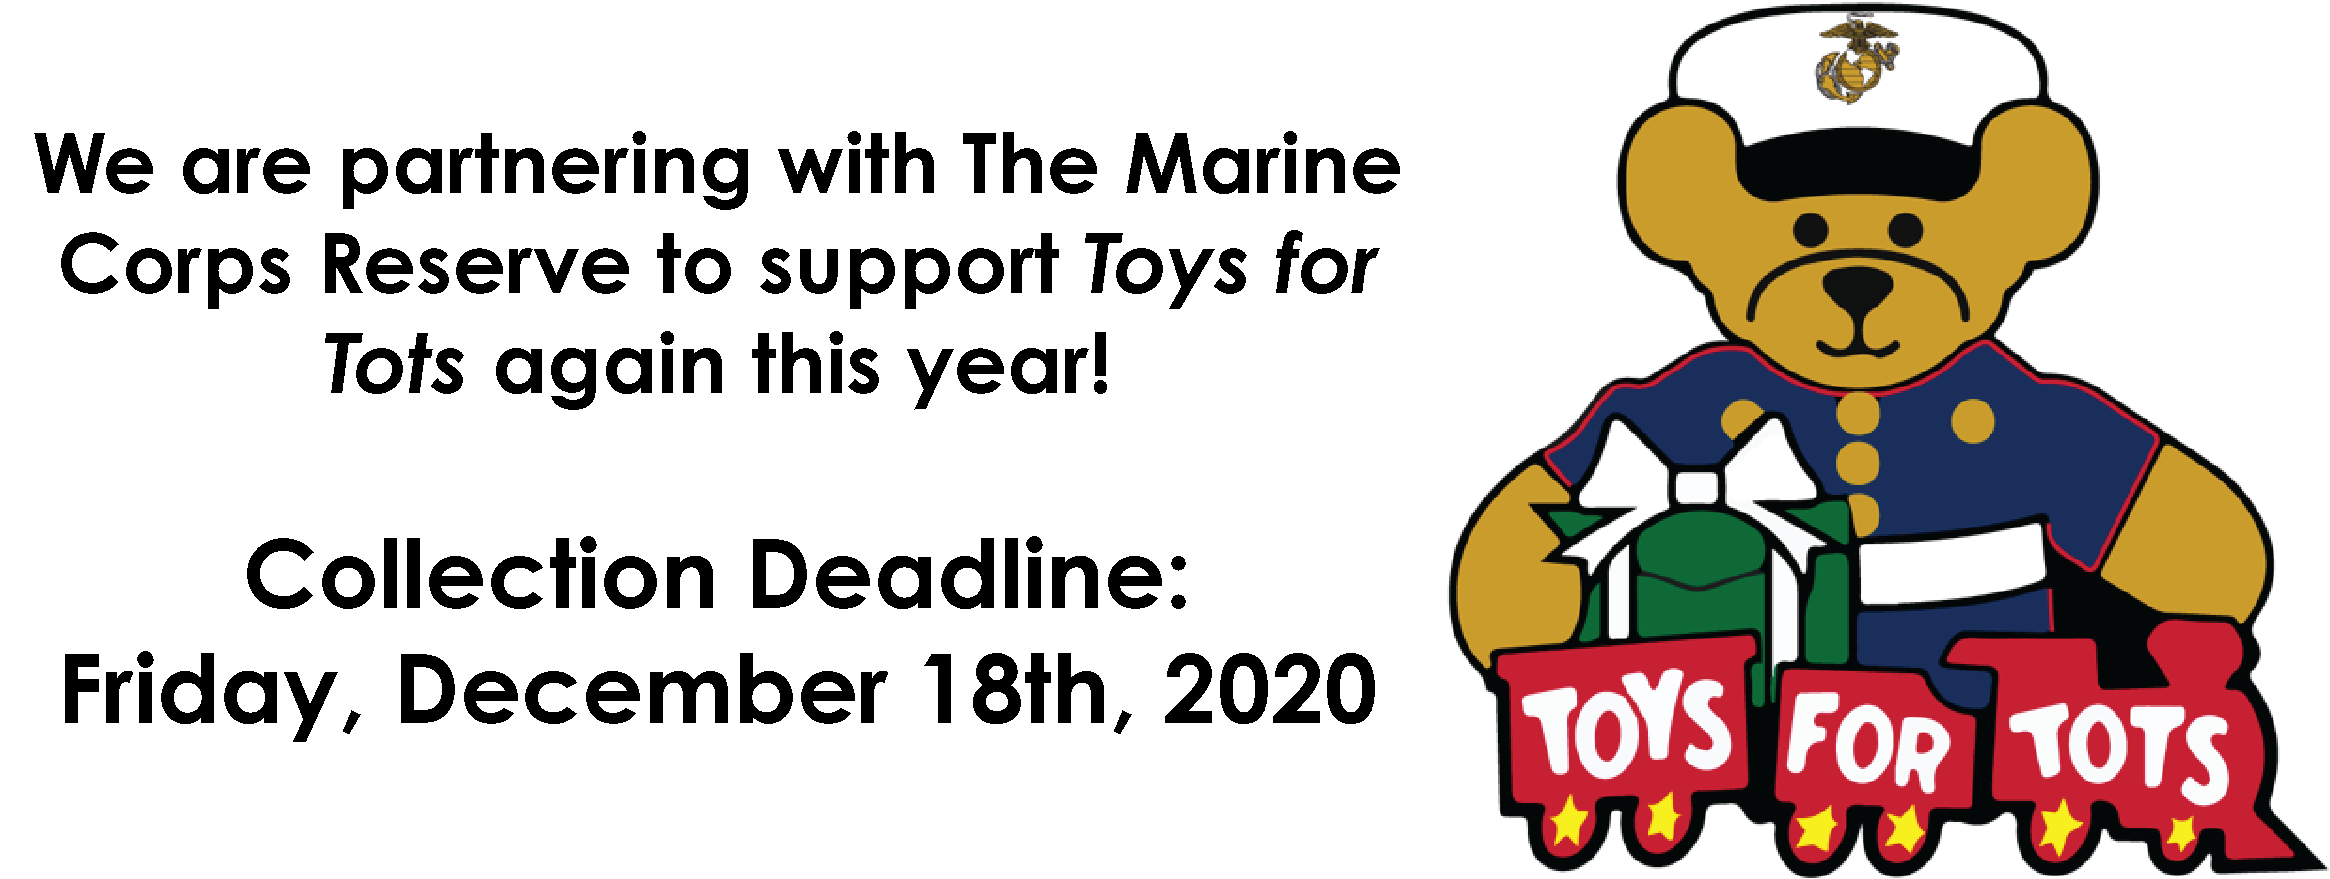 Toys for Tots Logo and note about deadline of December 18, 2020